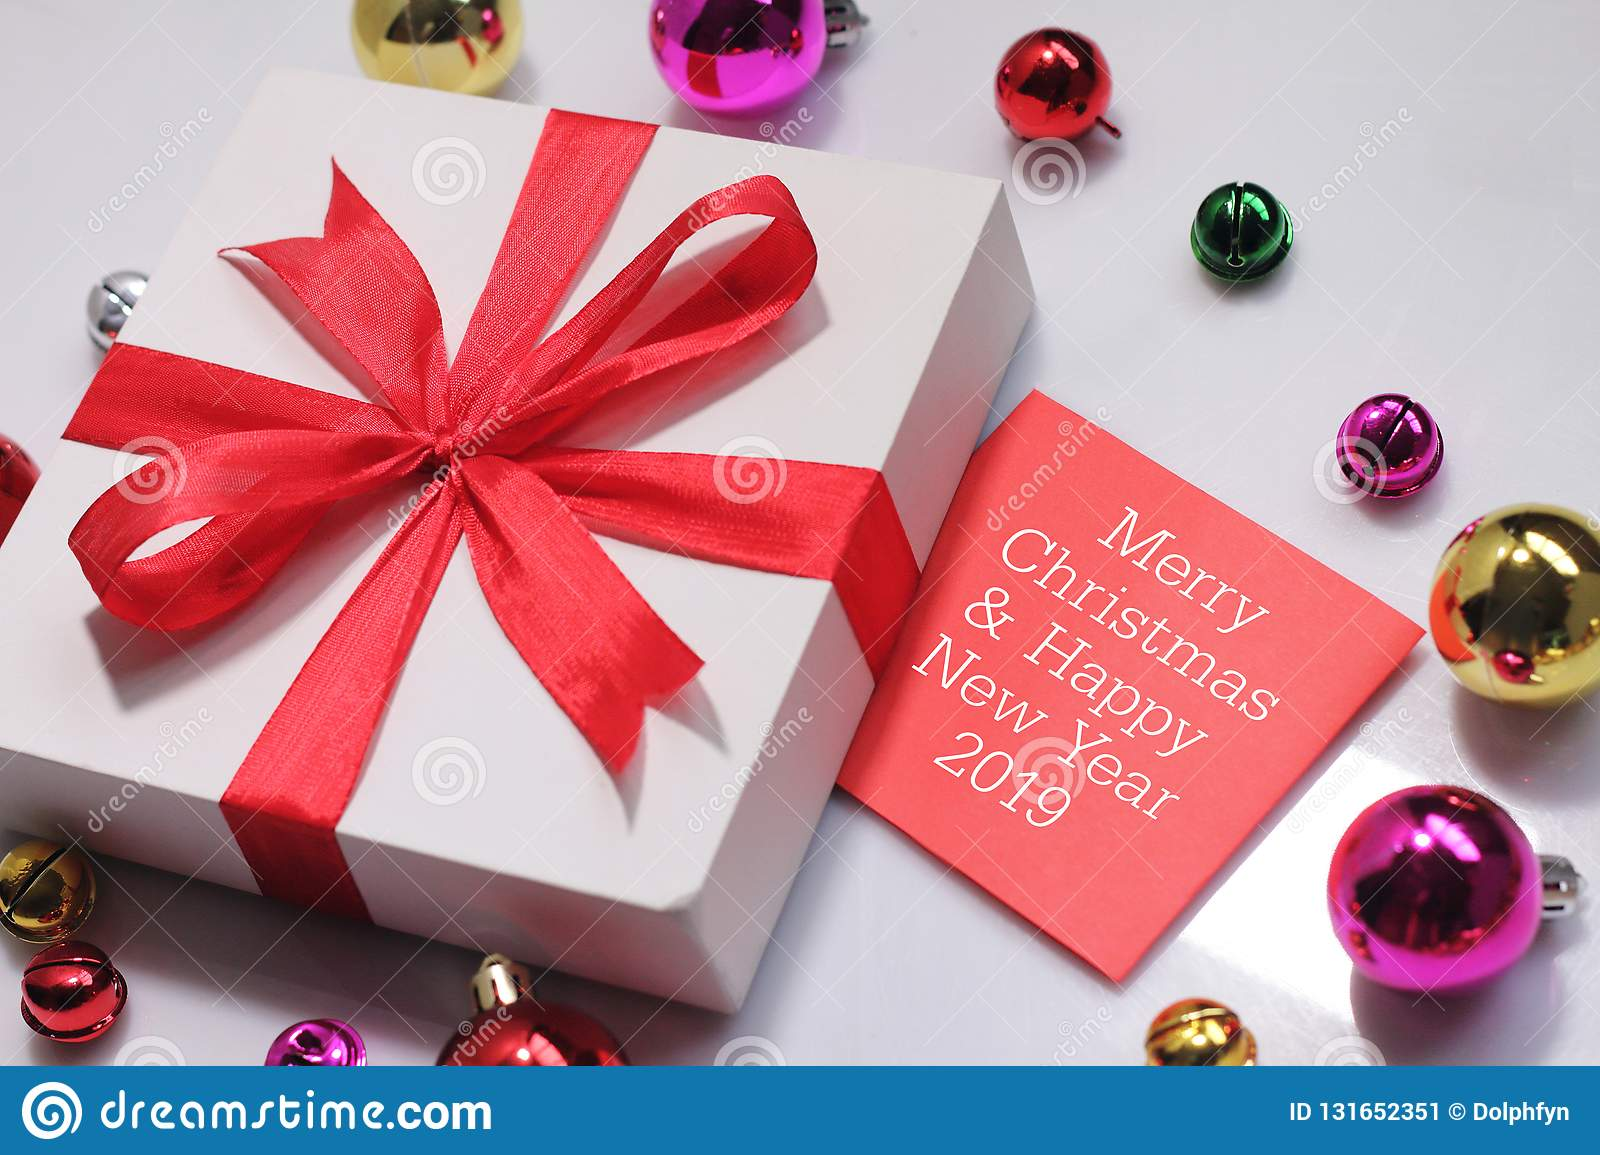 Christmas Gift Box With Greeting Card Wishing You Wonderful Memories During This Joyous Season Stock Image Image Of Gift Wishes 131652351